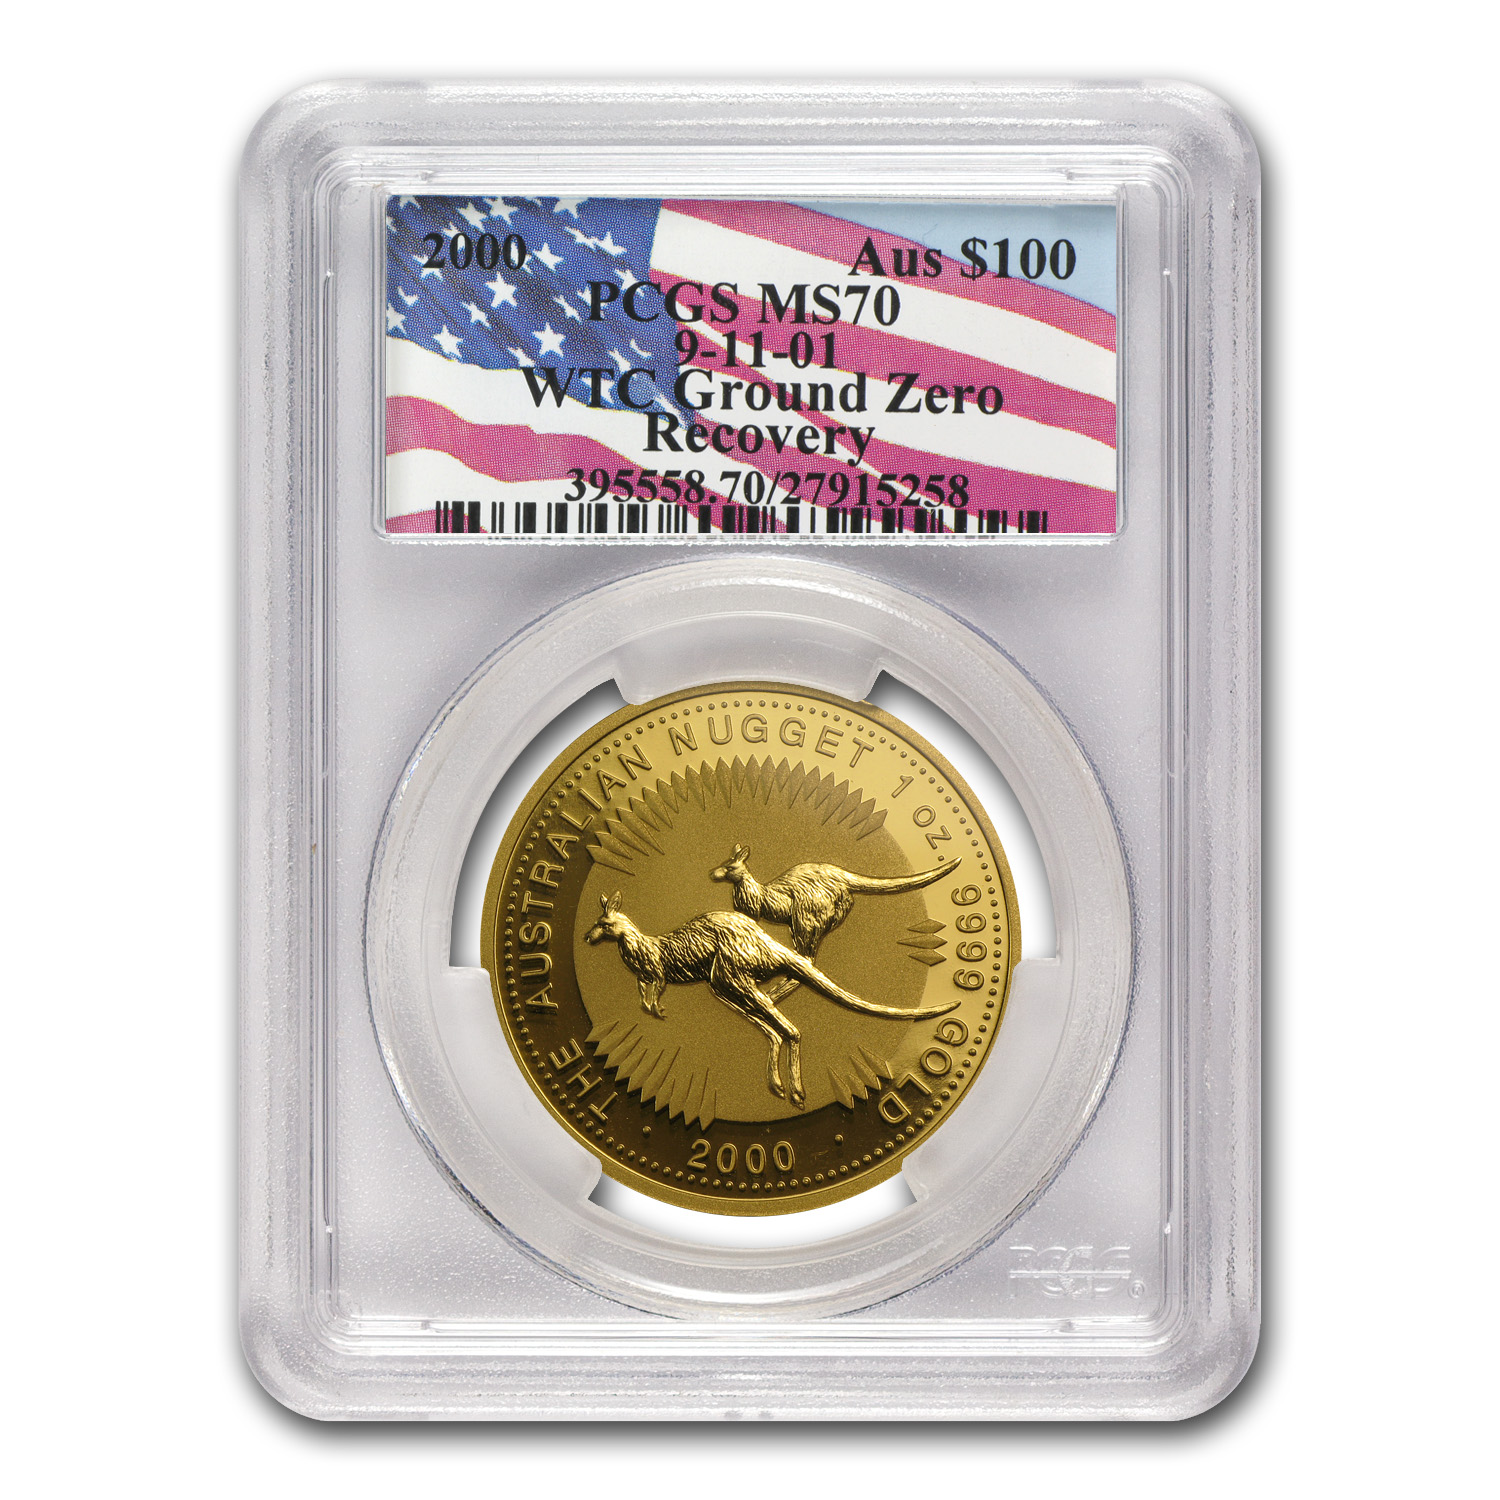 2000 1 oz Australian Gold Nugget MS-70 PCGS WTC Ground Zero